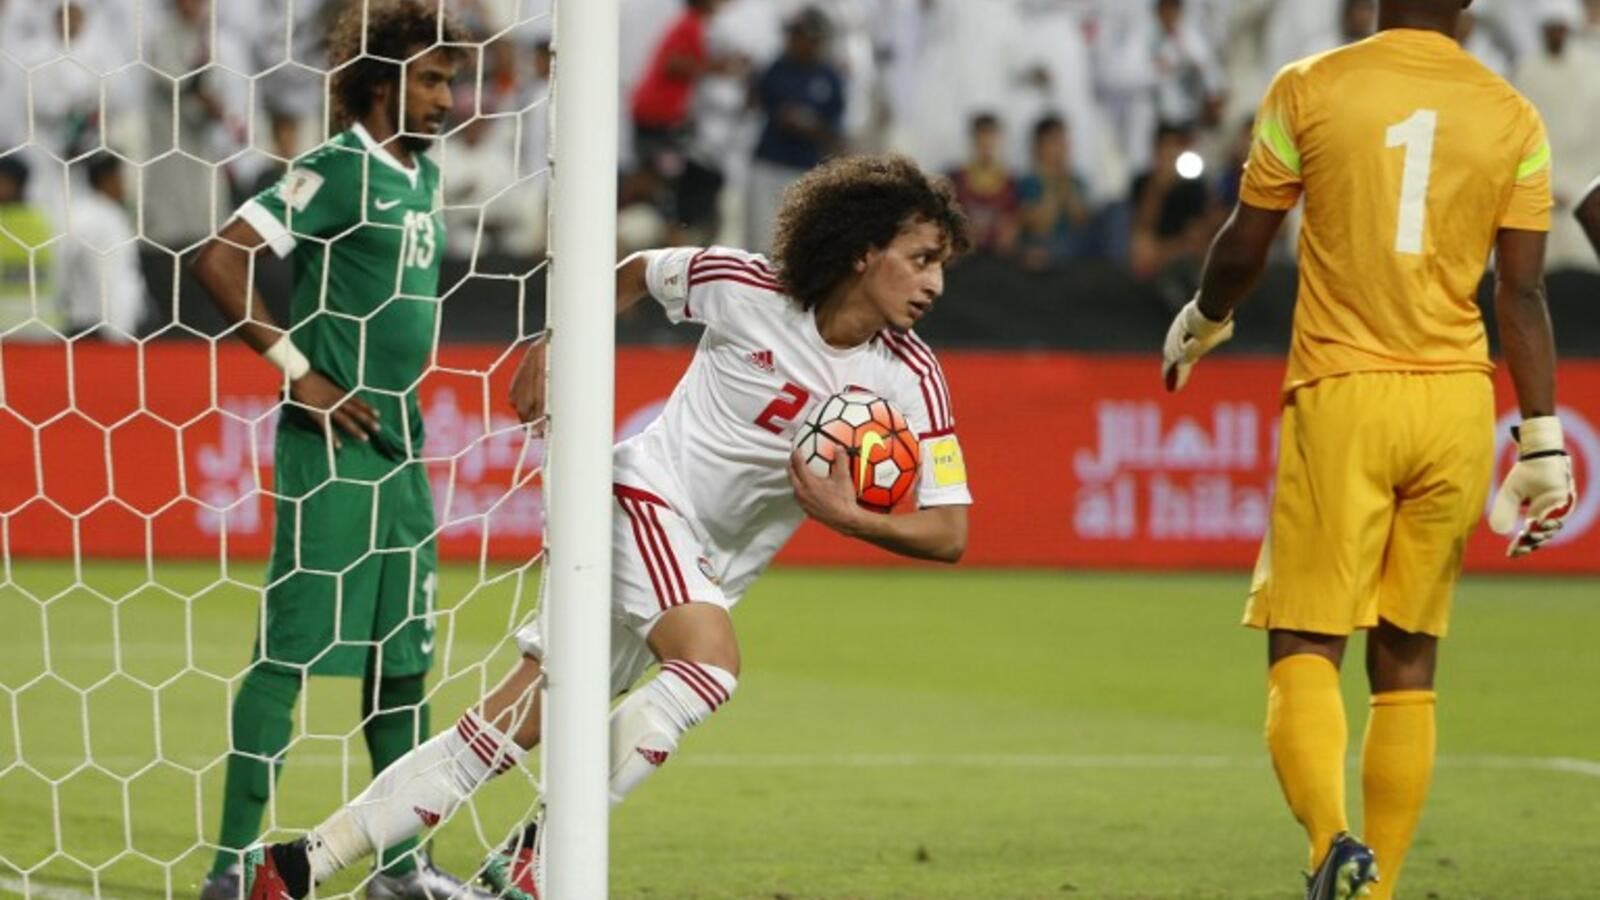 UAE's Omer Abdulrahman celebrates after scoring against Saudi Arabia during their World Cup 2018 Asian qualifying football match on March 29, 2016 at the Mohammed Bin Zayed Stadium in Abu Dhabi.